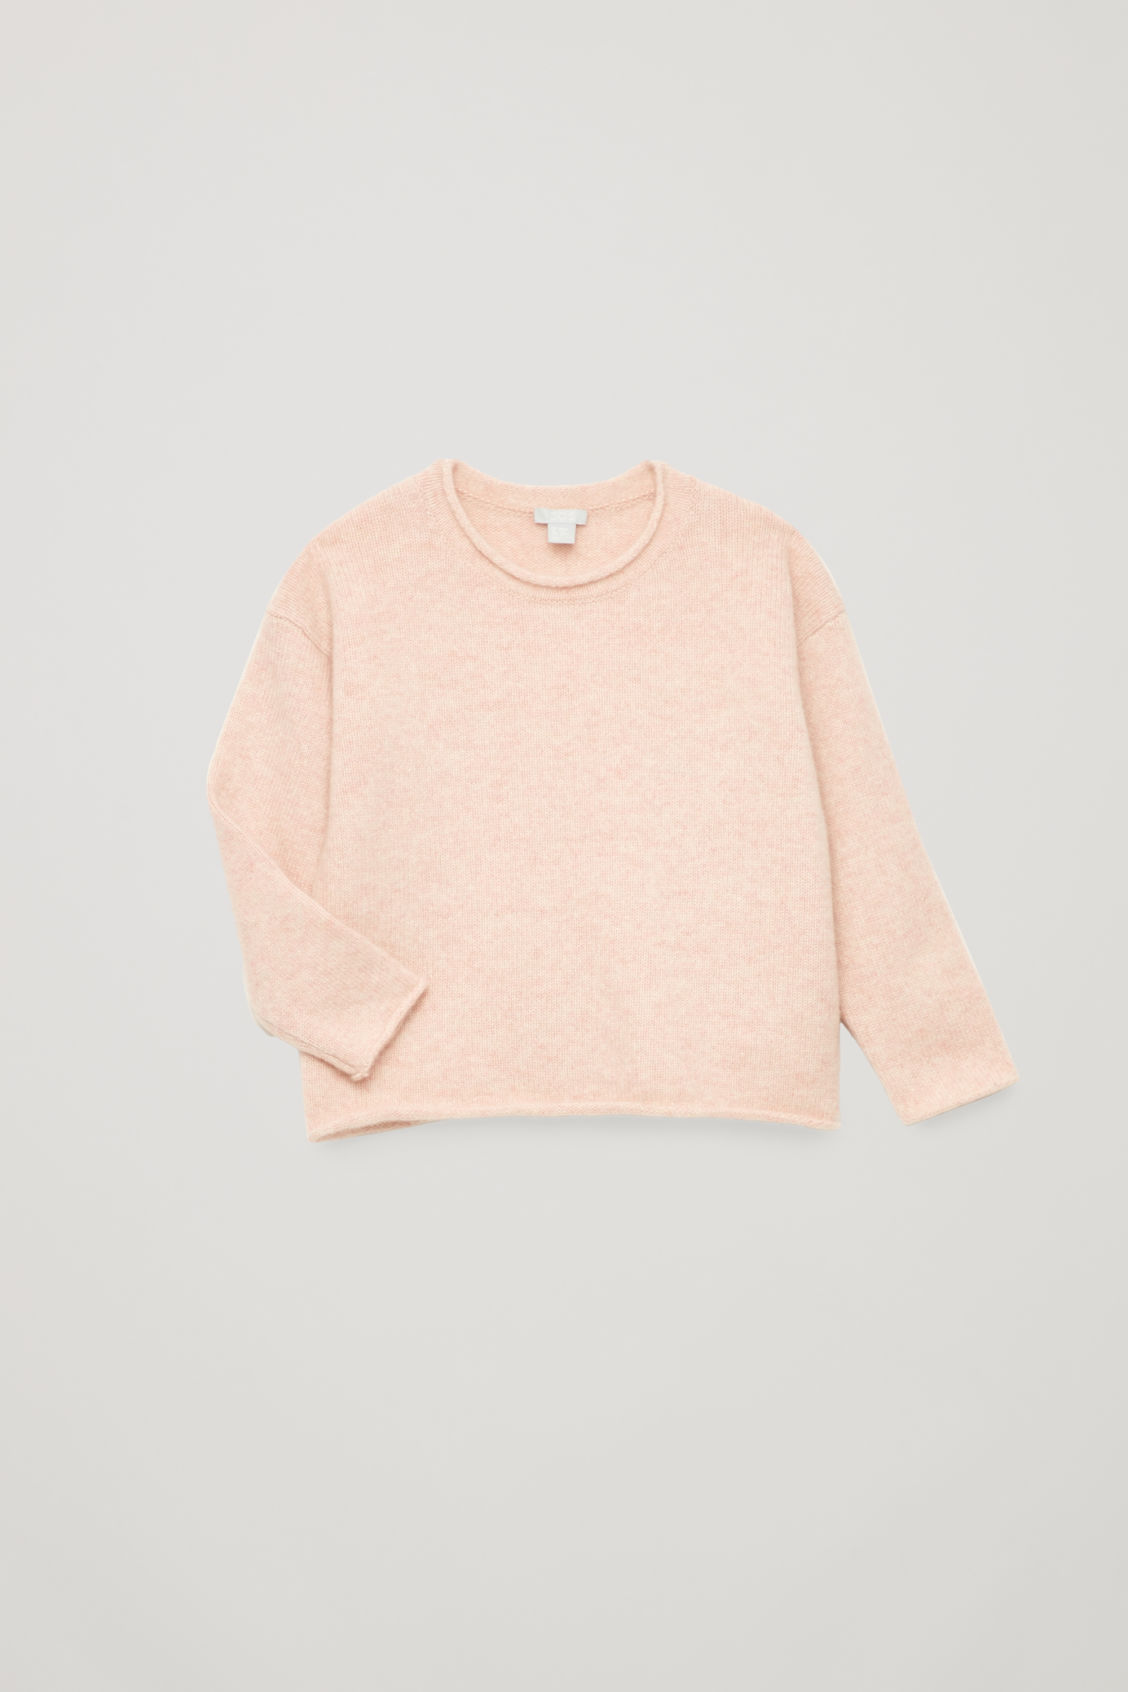 Detailed image of Cos cashmere knitted jumper in pink